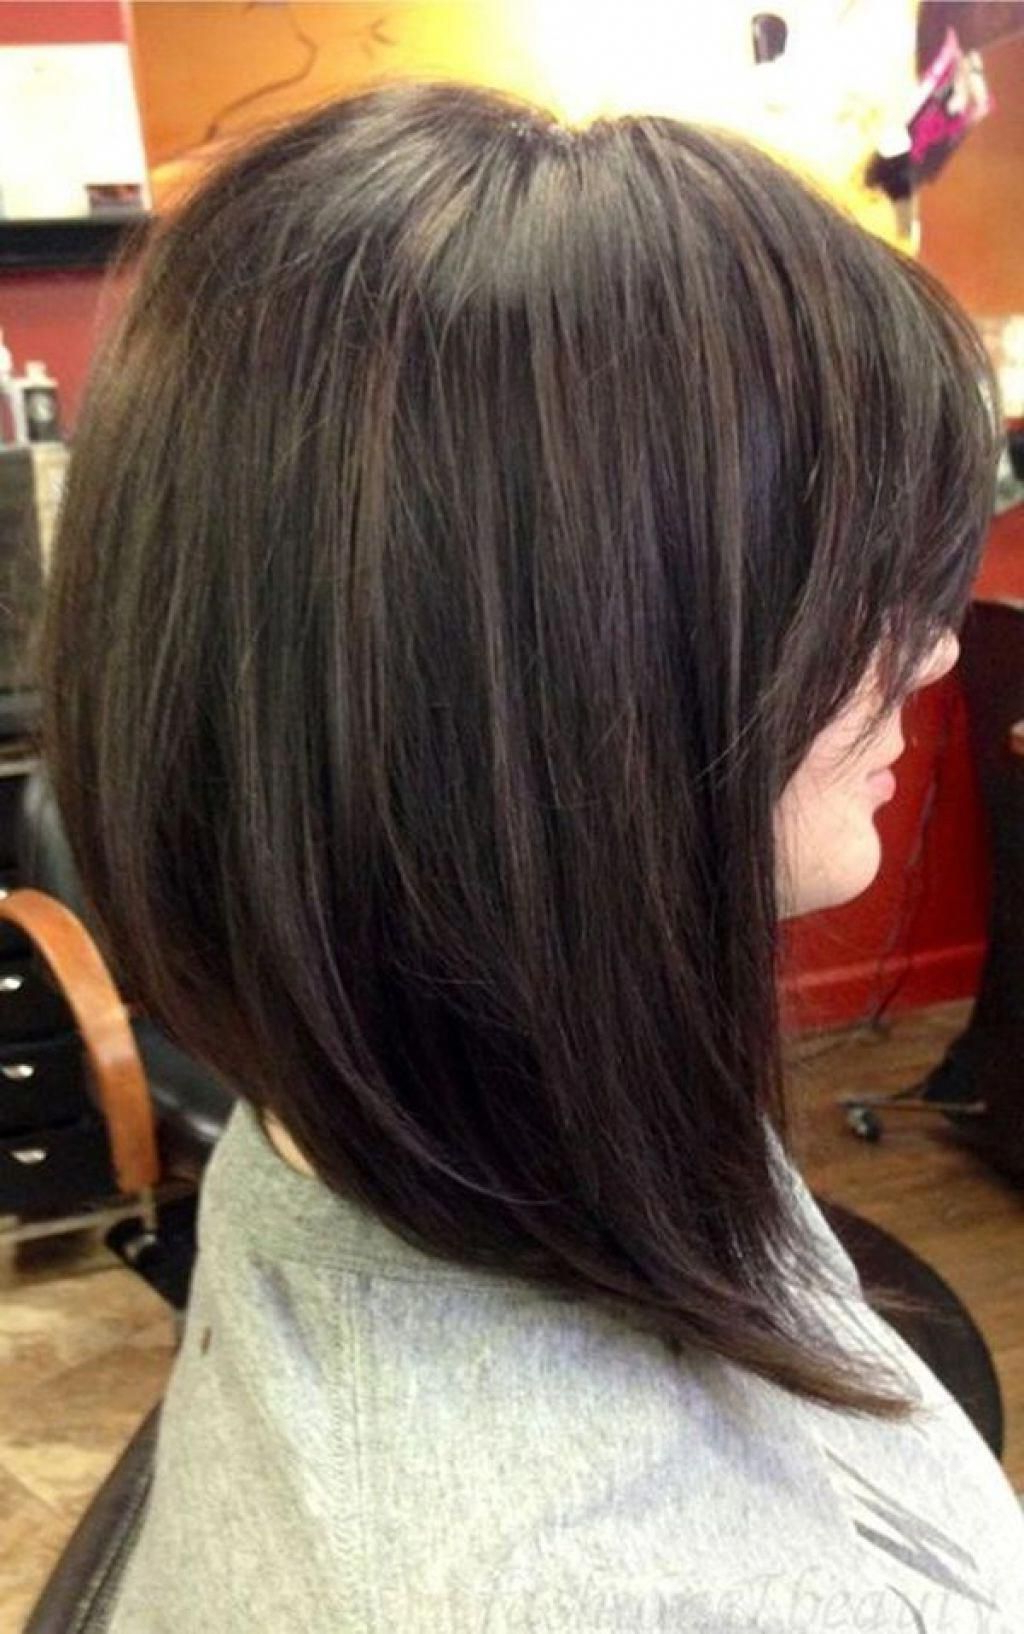 Pin On Long Bob Haircuts With Bangs Within Well Known Modern Swing Bob Hairstyles With Bangs (Gallery 19 of 20)